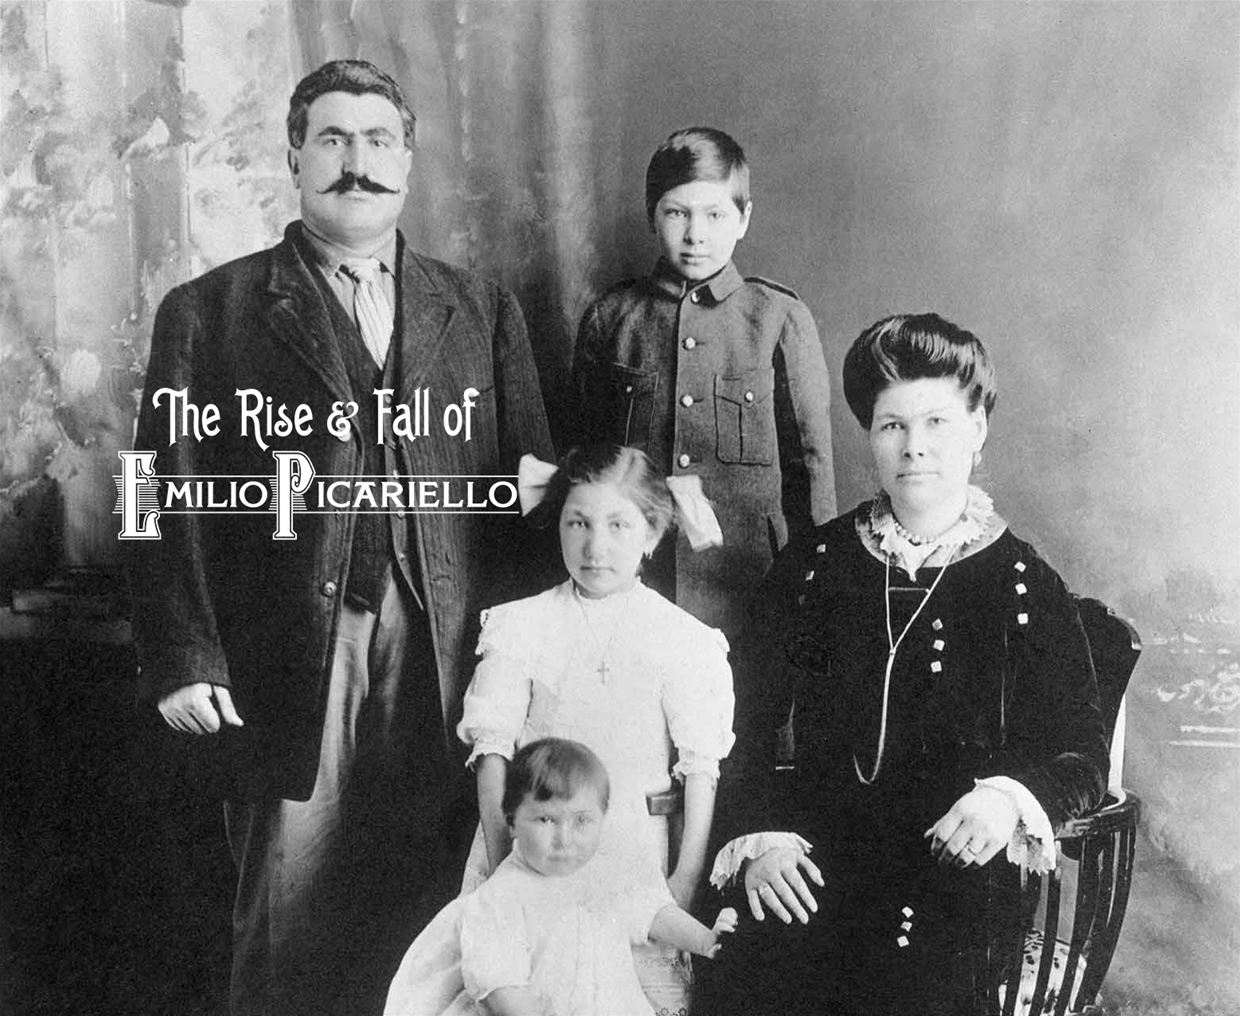 Emilio Picariello with his family